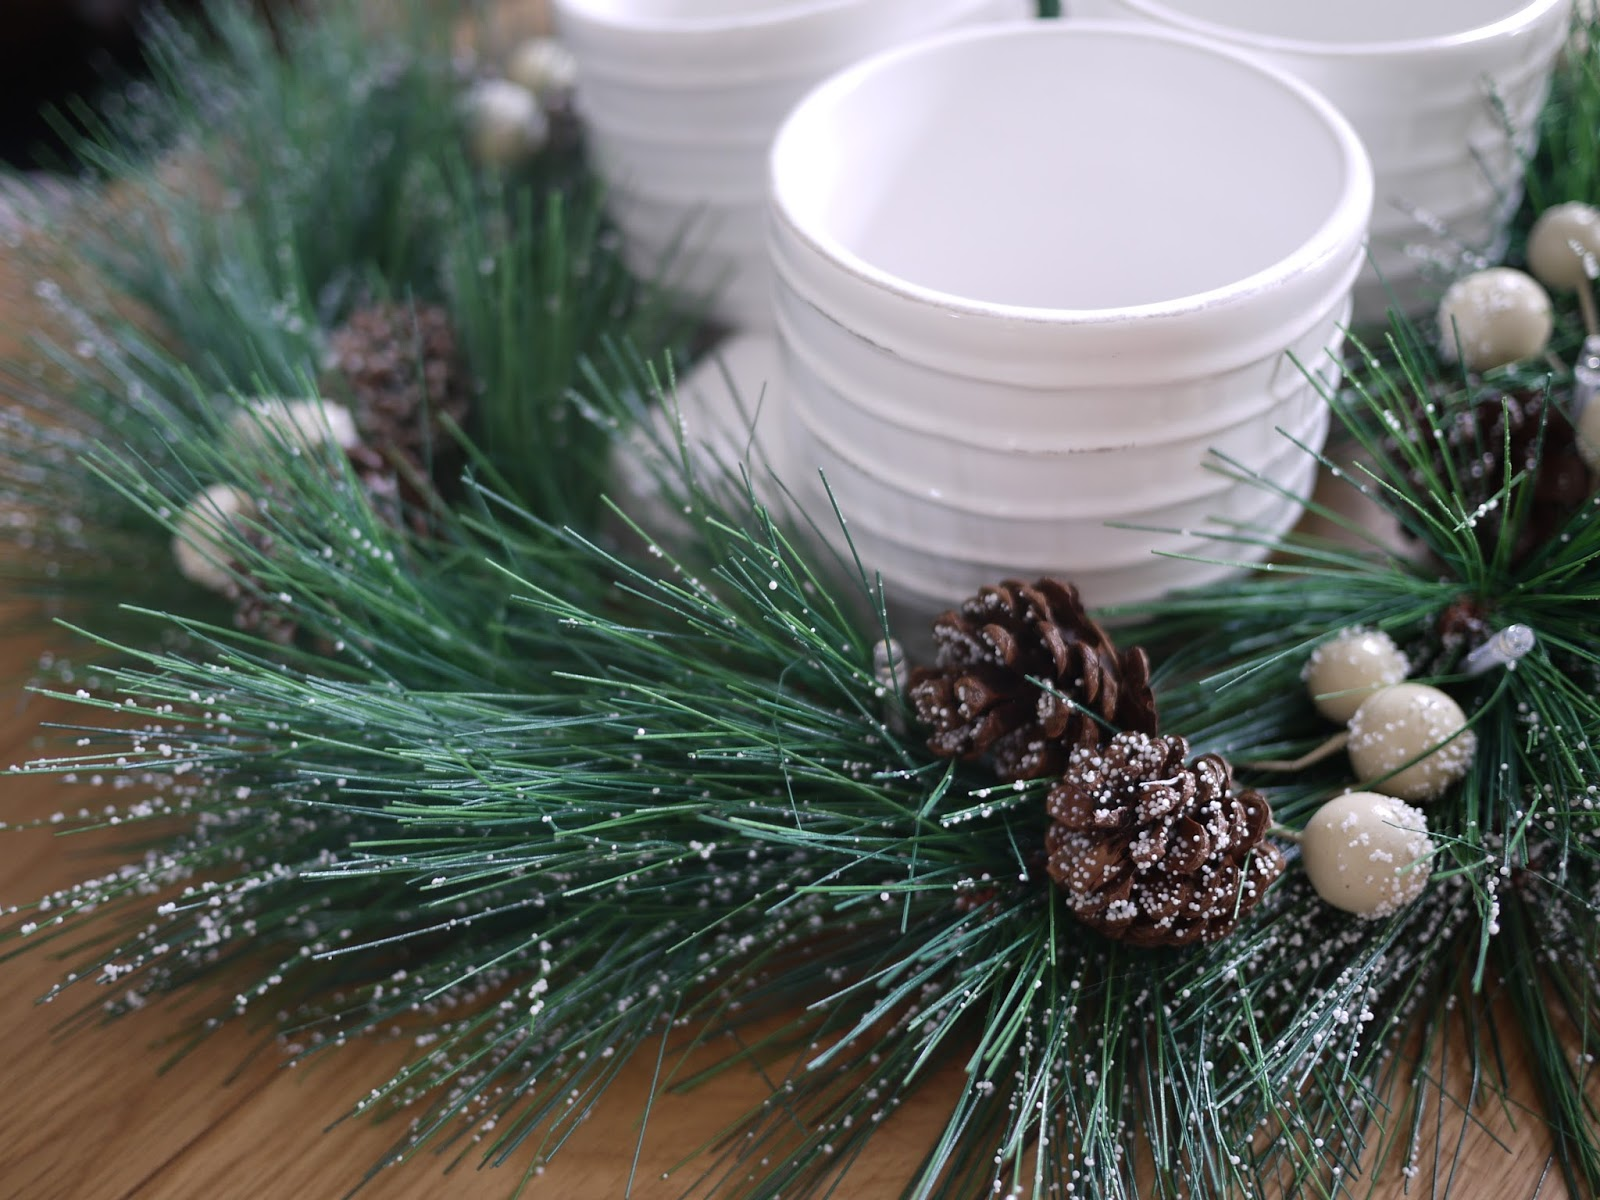 Table wreath from Dunelm Mill